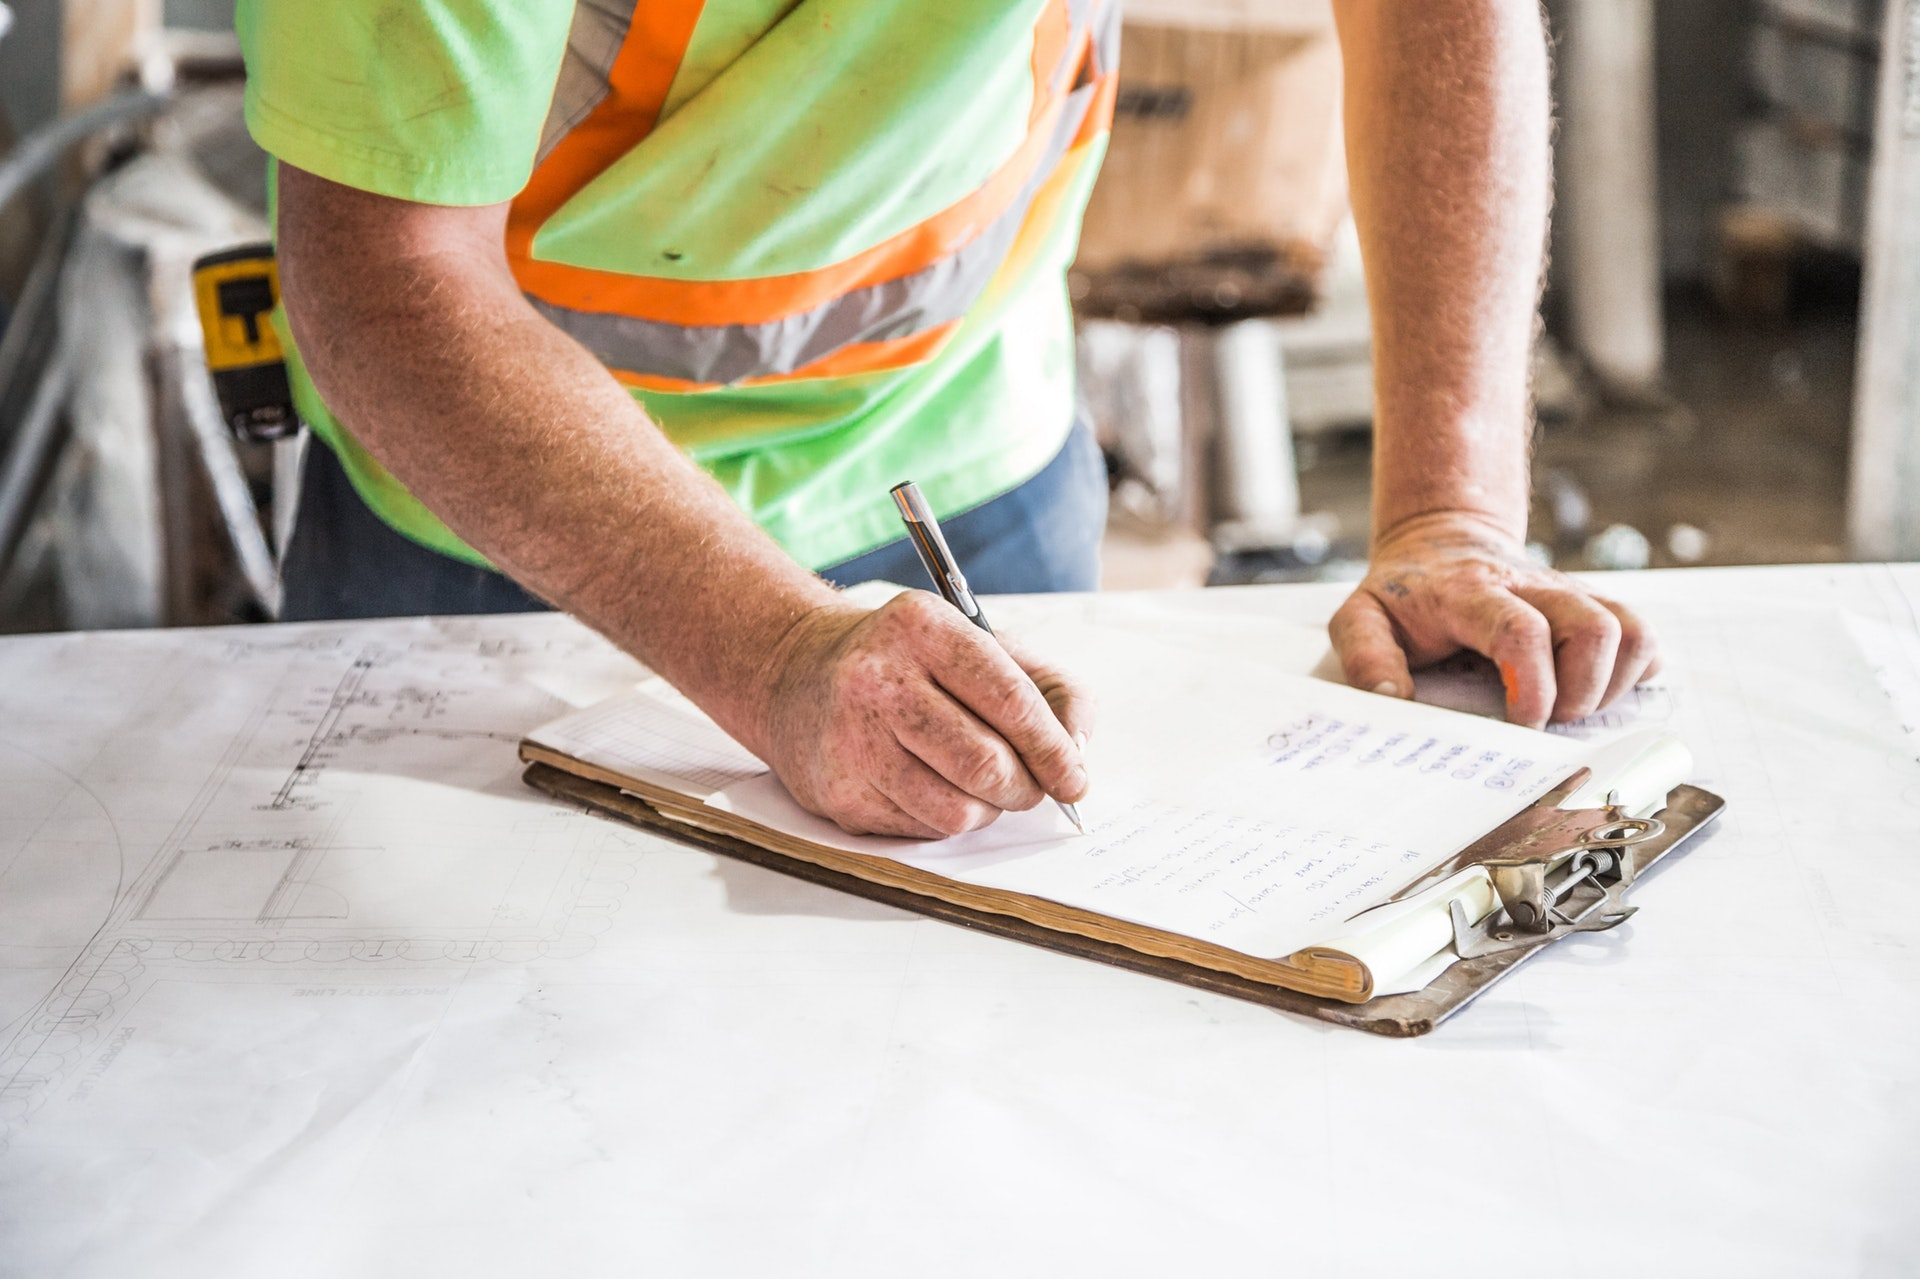 Things Your Professional Home Contractor Won't Tell You